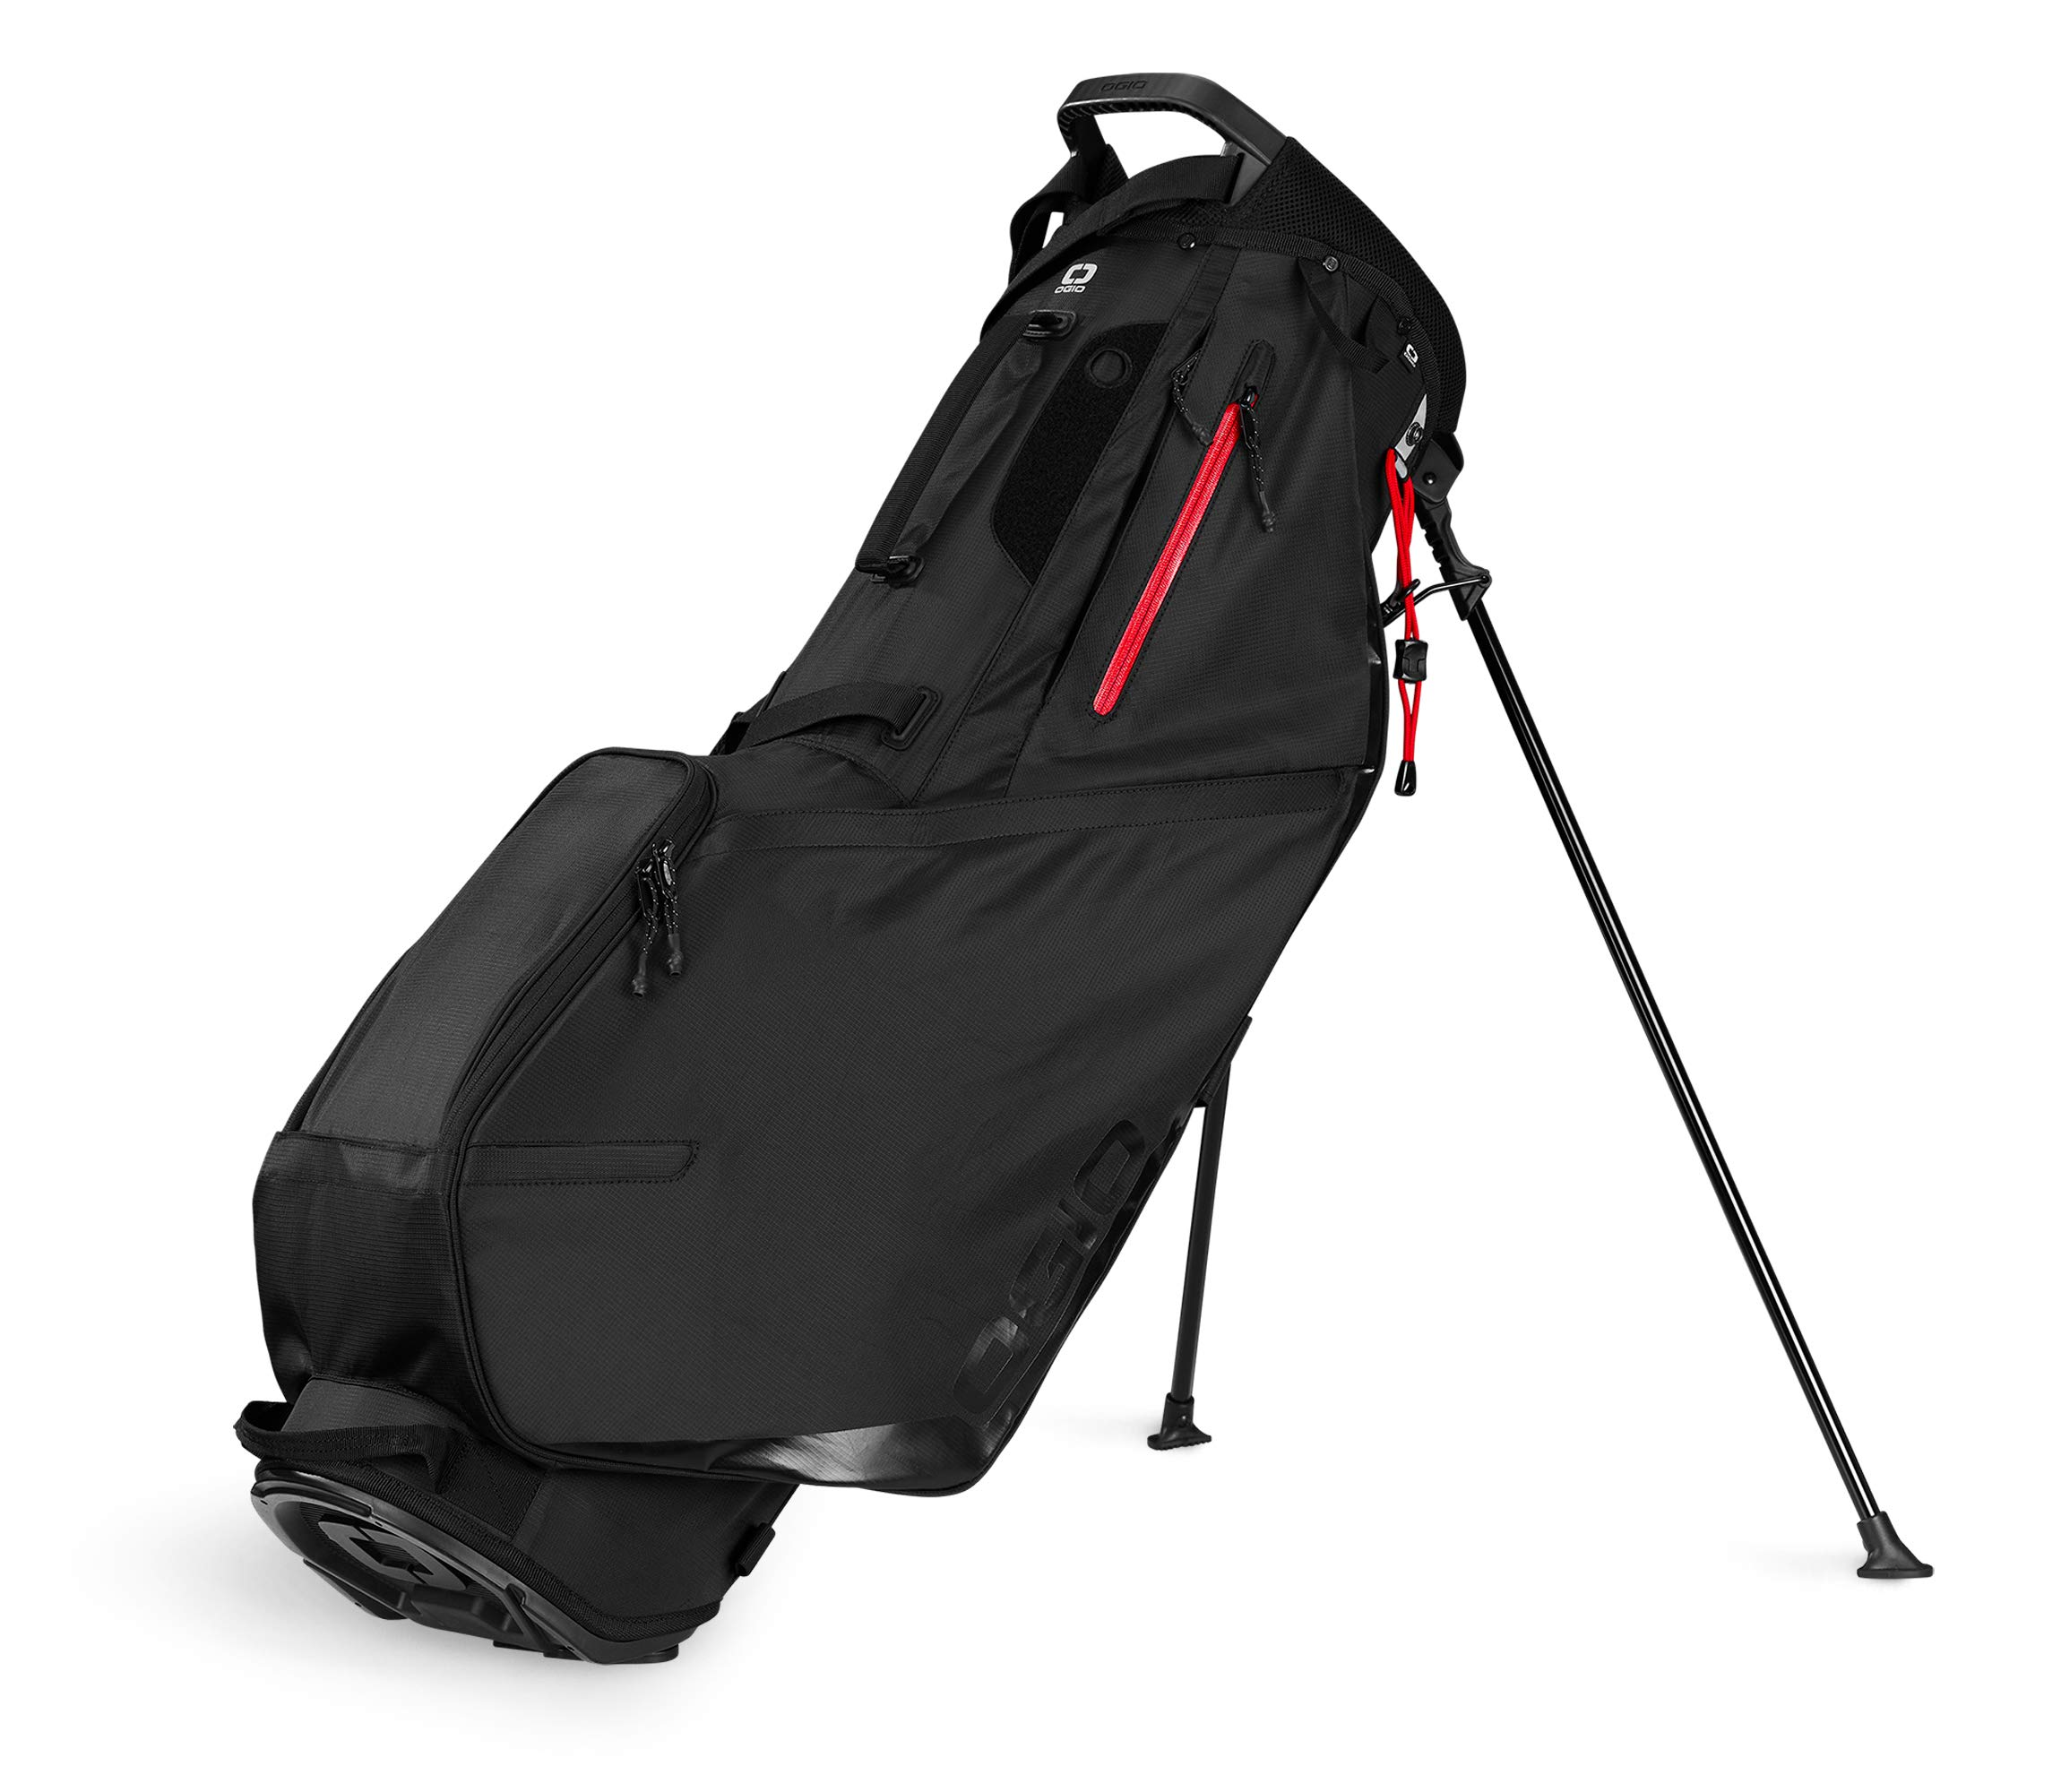 OGIO SHADOW Fuse 304 Golf Stand Bag, Black/Black by OGIO